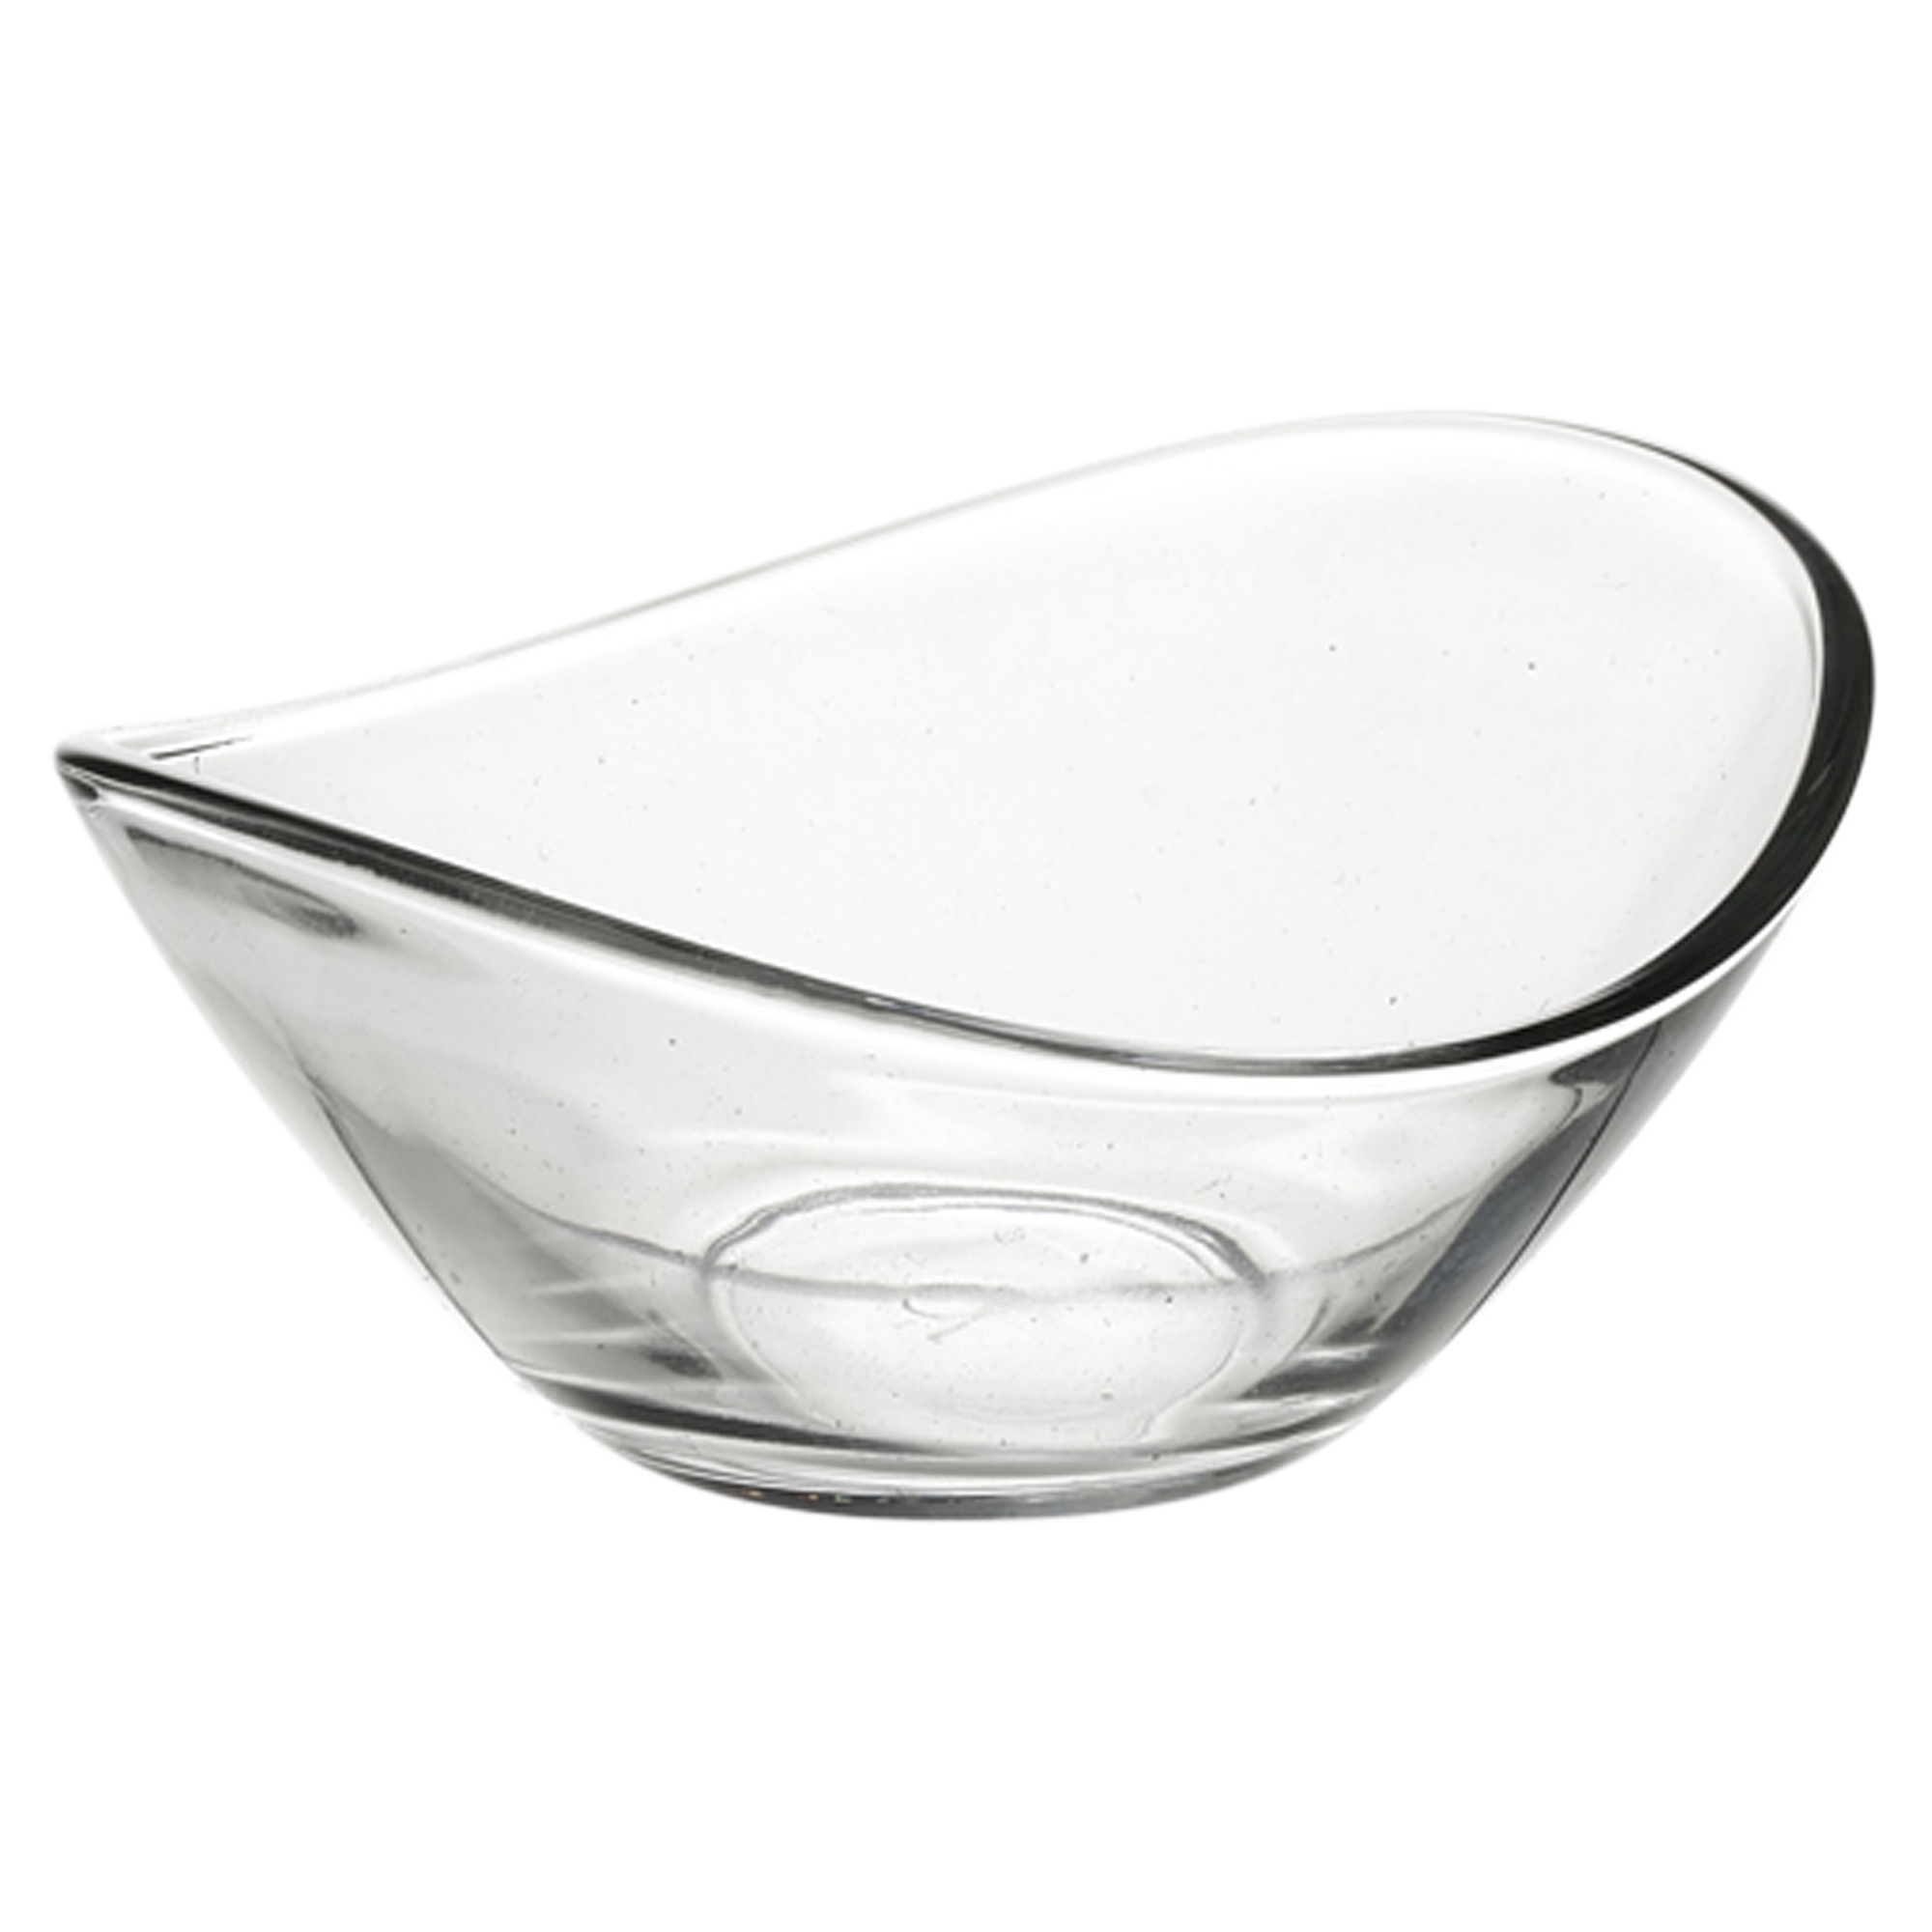 6 X Pasabahce Small Clear Glass Curved Dessert Bowls Ice